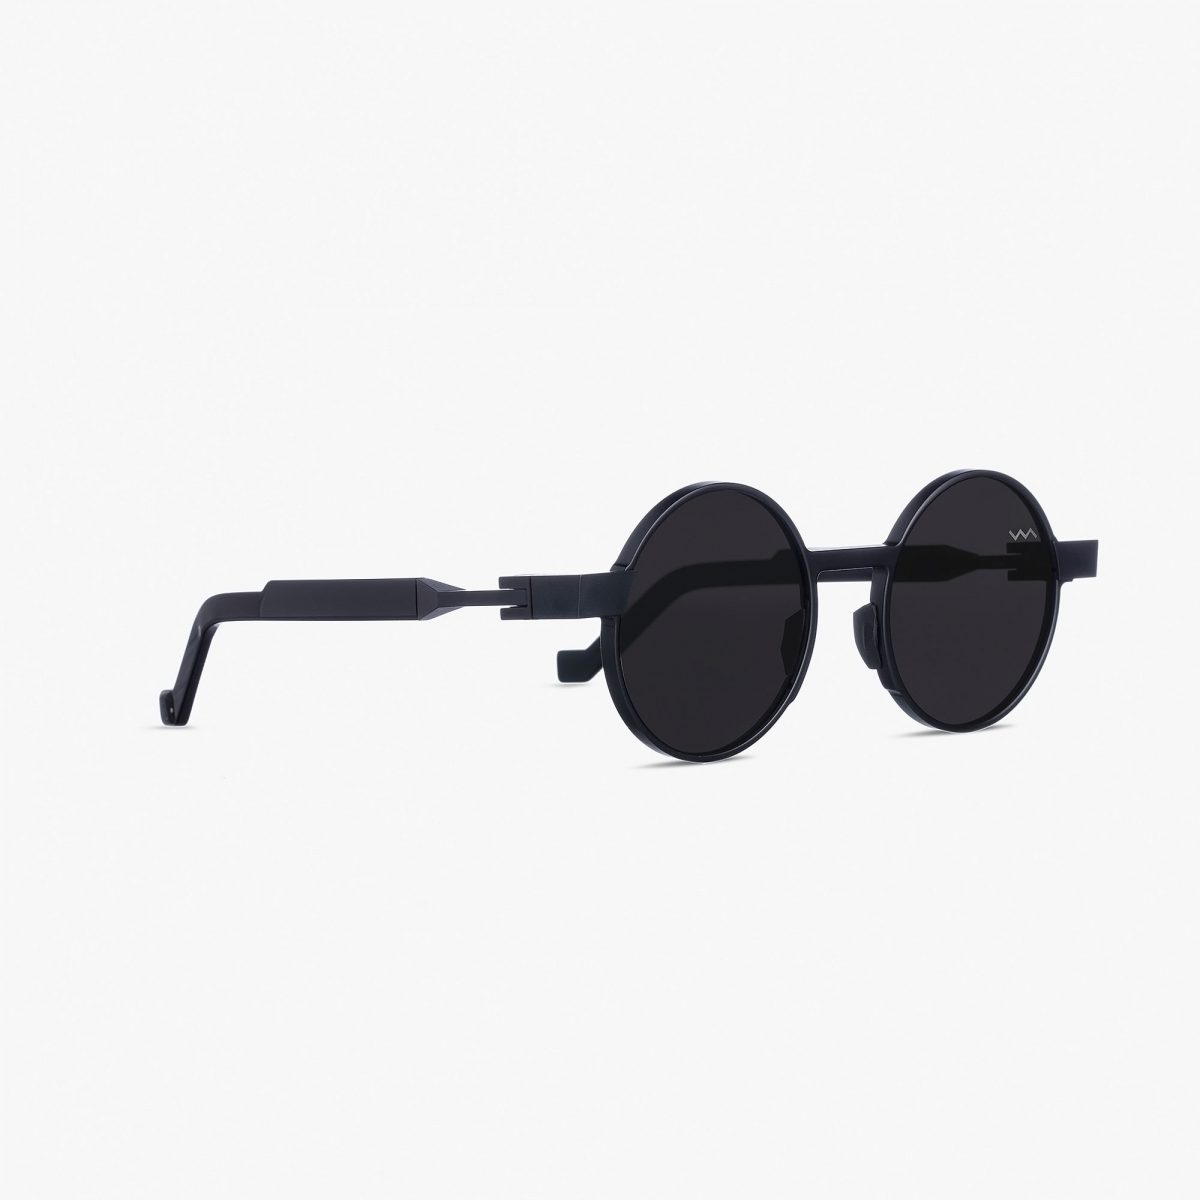 VAVA EYEWEAR ONLINE SHOP WL0038 SUNGLASS BLACK SIDE